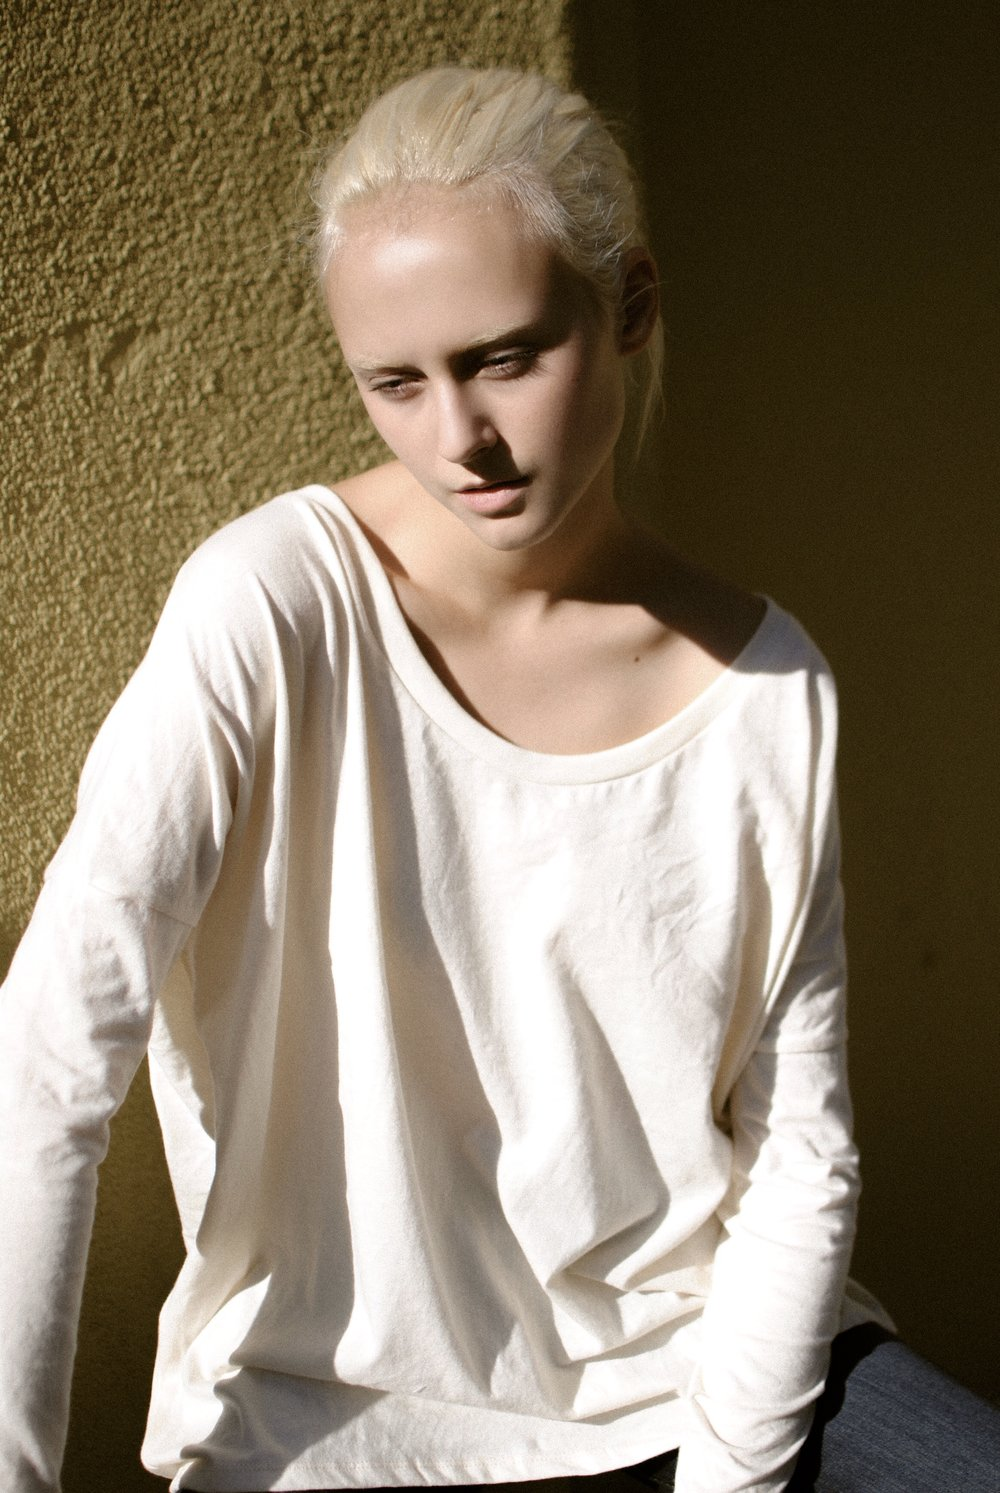 November 2016 photoshoot with Jenna Karan in California wearing the 100% organic cotton Blythe Long Sleeve in natural by Mainline. Photography by Mainline.